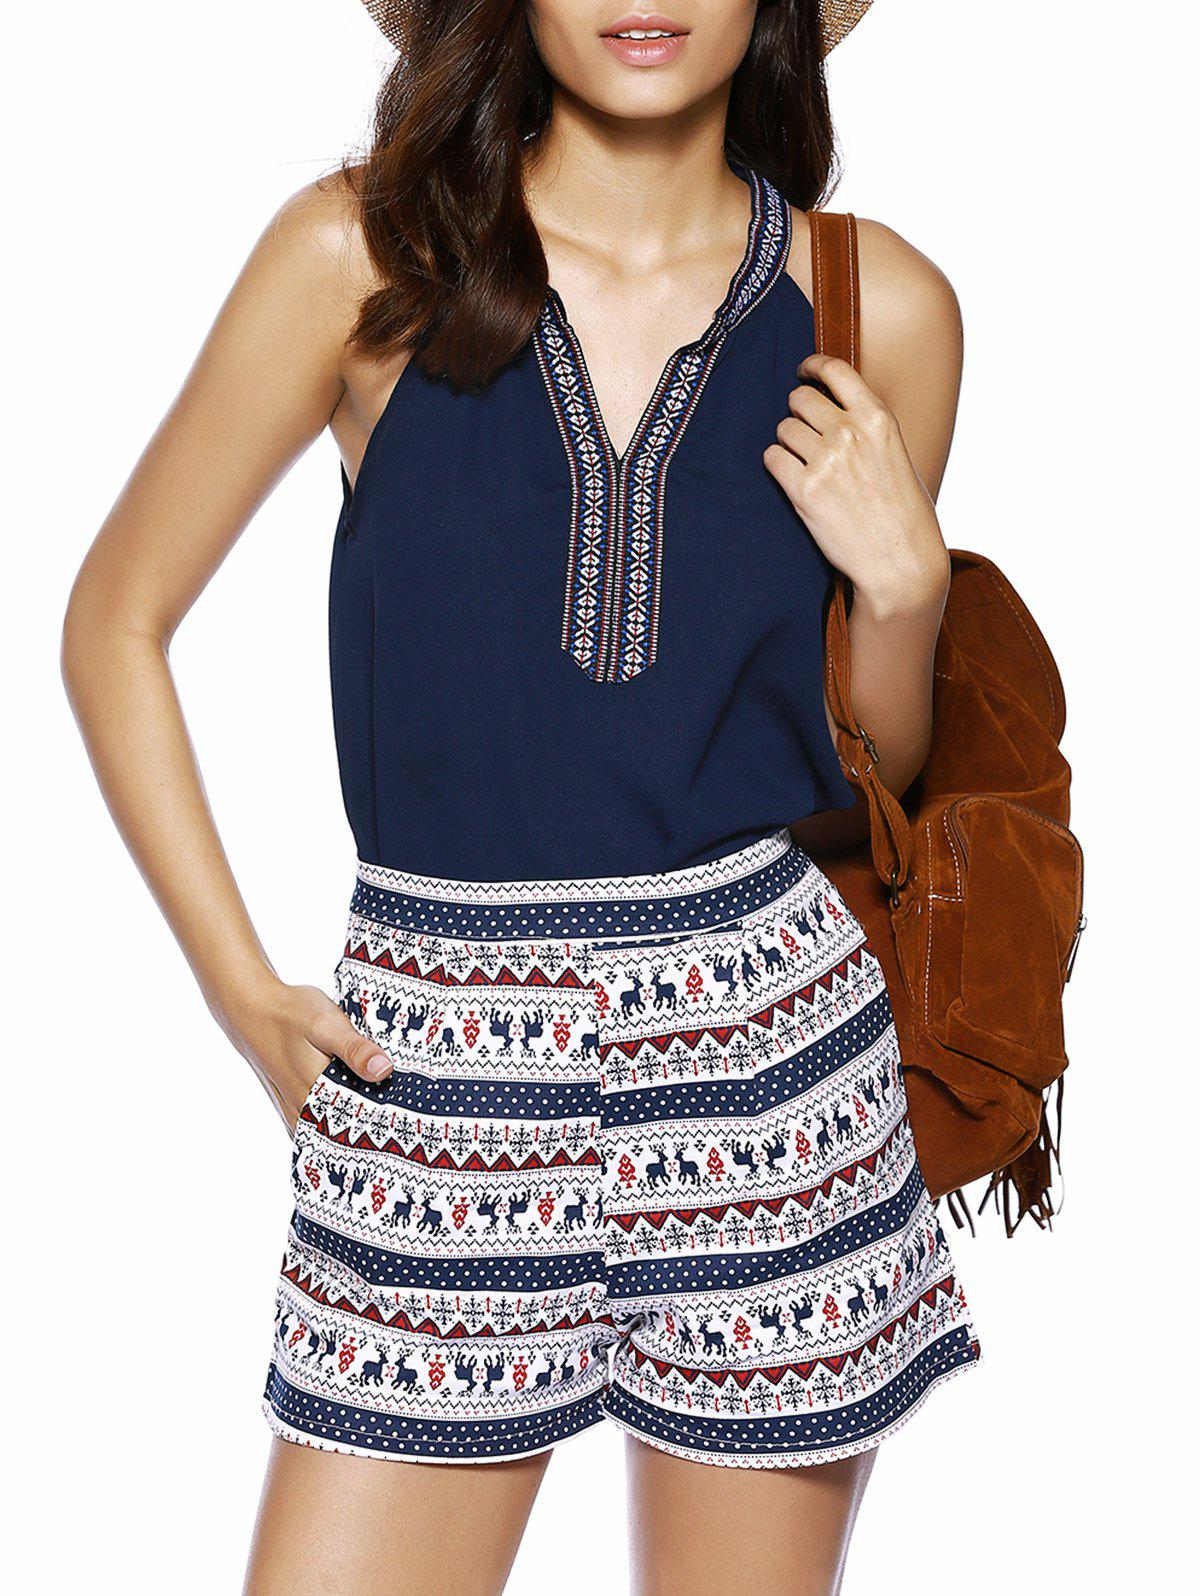 V Neck Bohemian Style Top and Ethnic Print Shorts - DEEP BLUE M